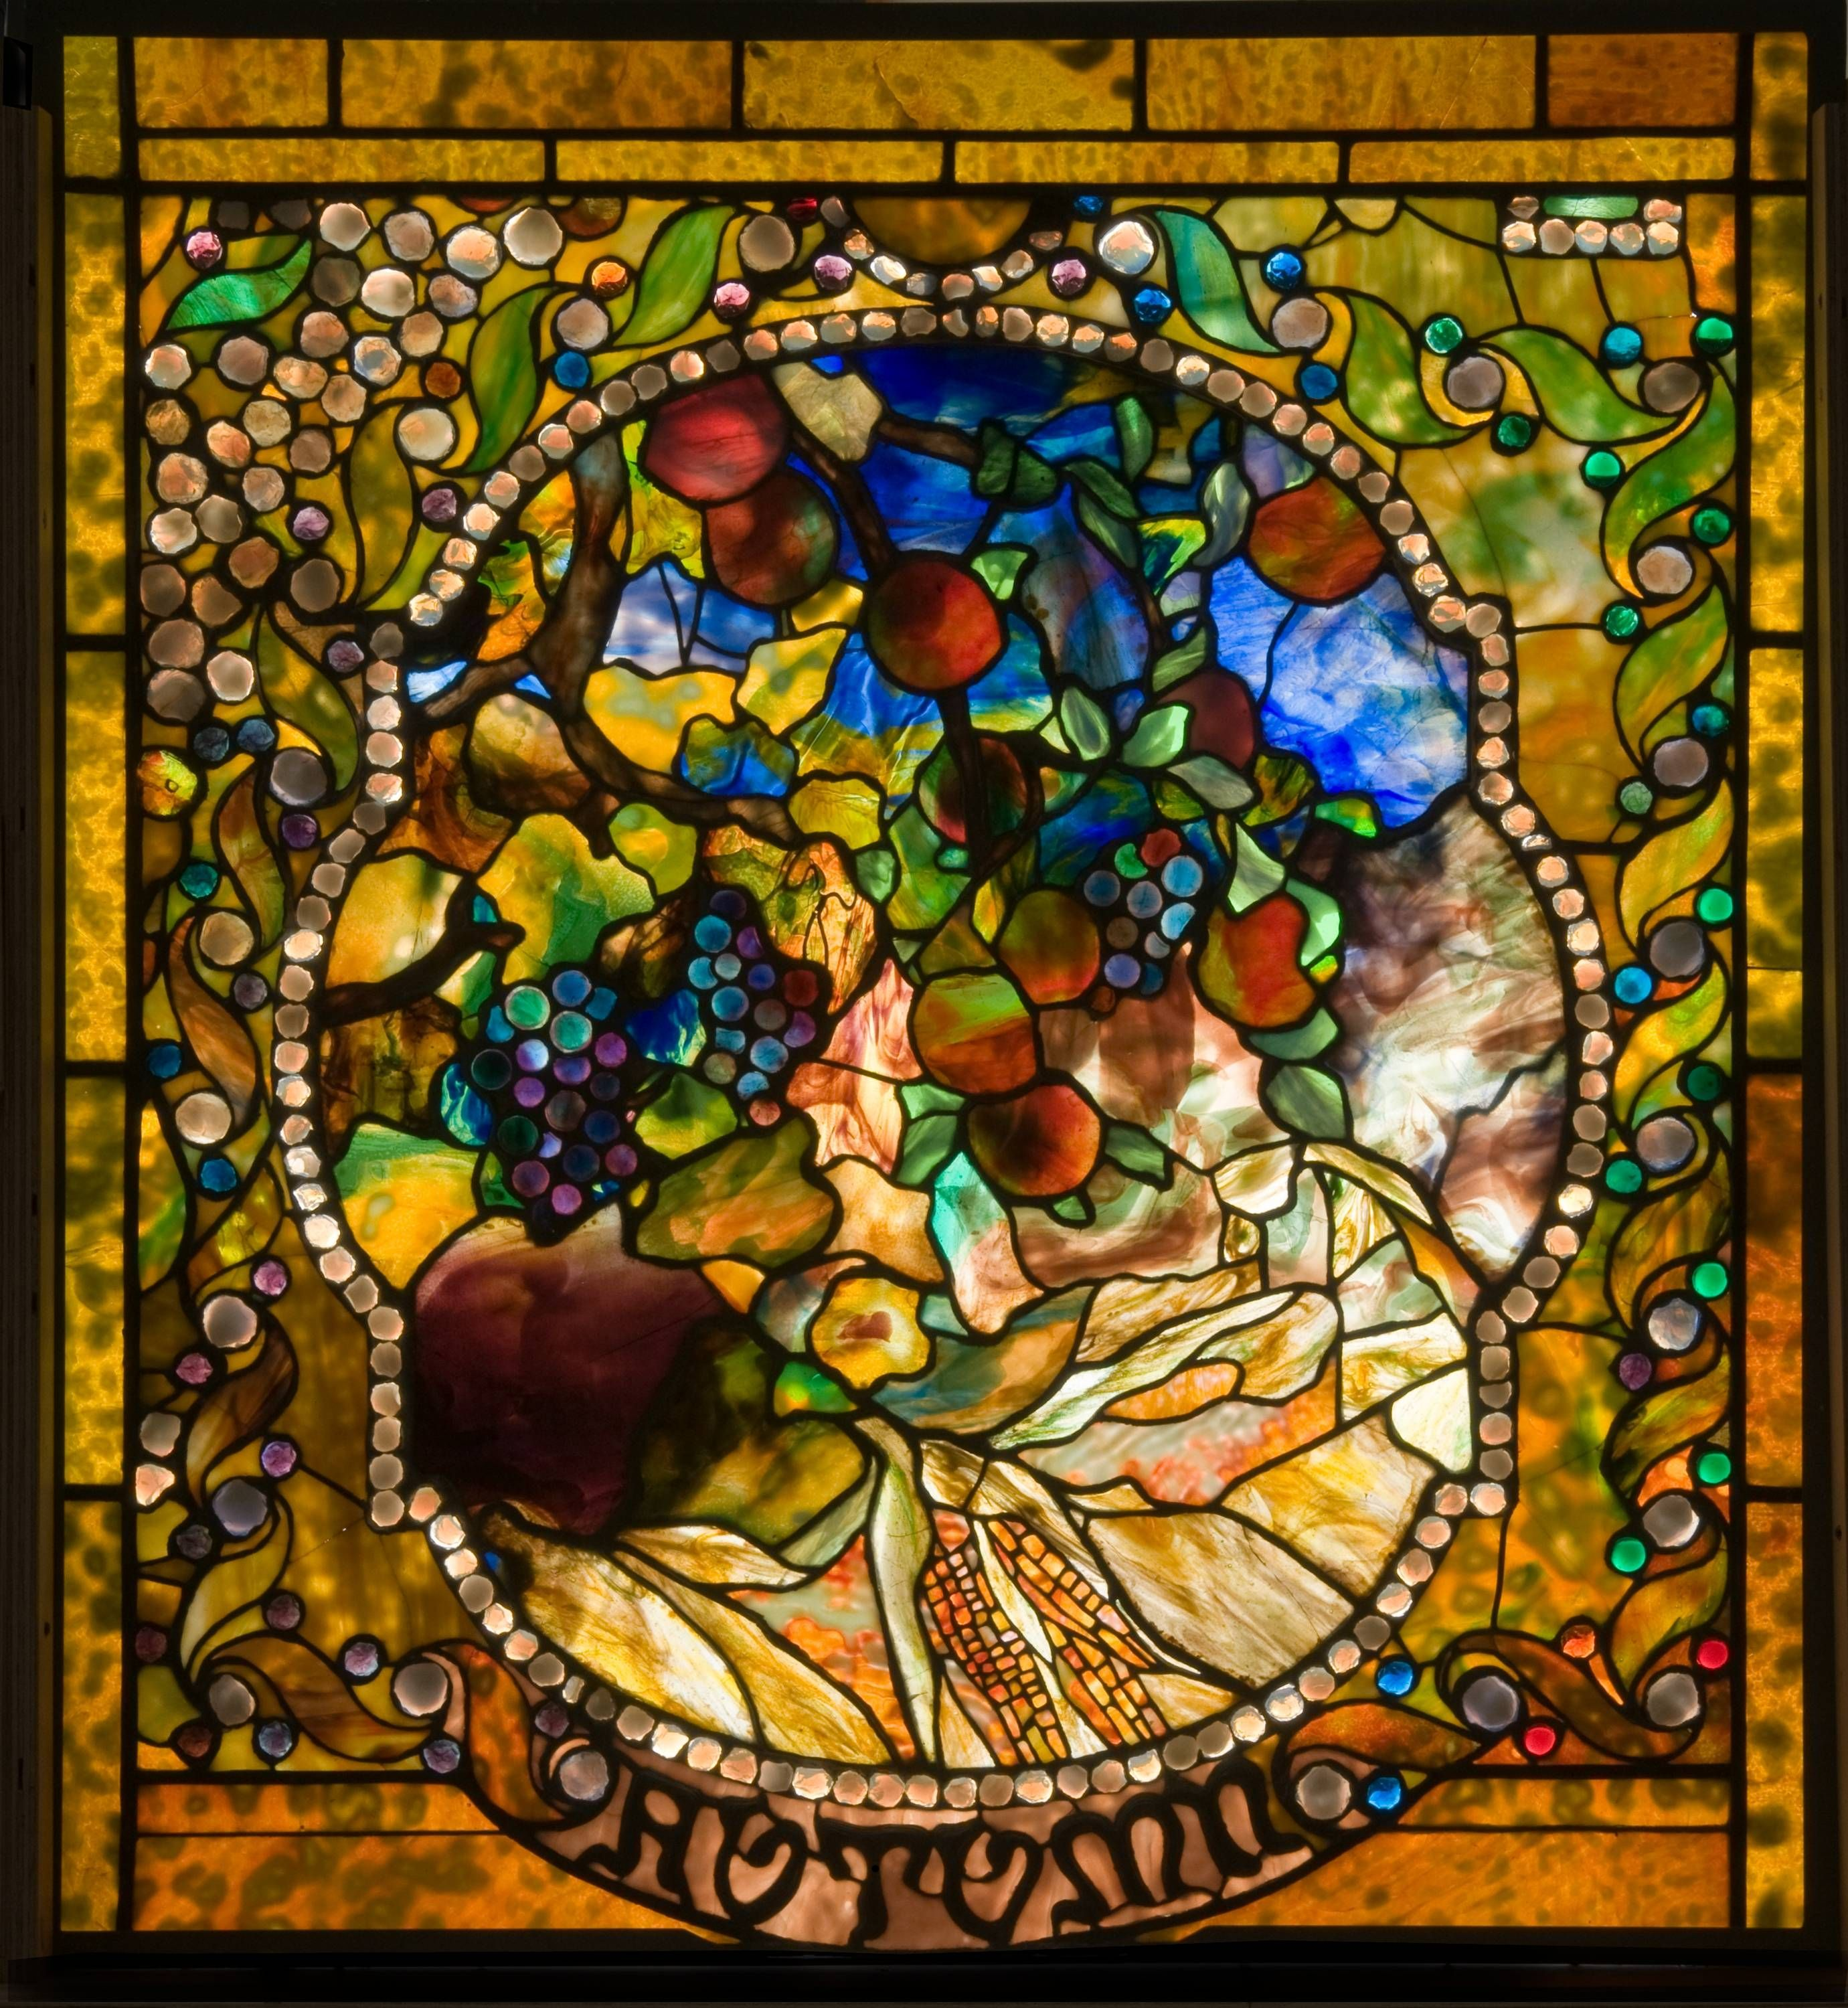 Salvaged from the Laurelton Hall living room, this is one of the Four Seasons window panels produced by Louis Comfort Tiffany c. 1899–1900. The four panels were exhibited at Exposition Universelle, Paris in 1900 and Prima Exposizione d'Arte Decoration Moderna in Turin, Italy in 1902 before being installed in Louis Comfort Tiffany's home.FALL